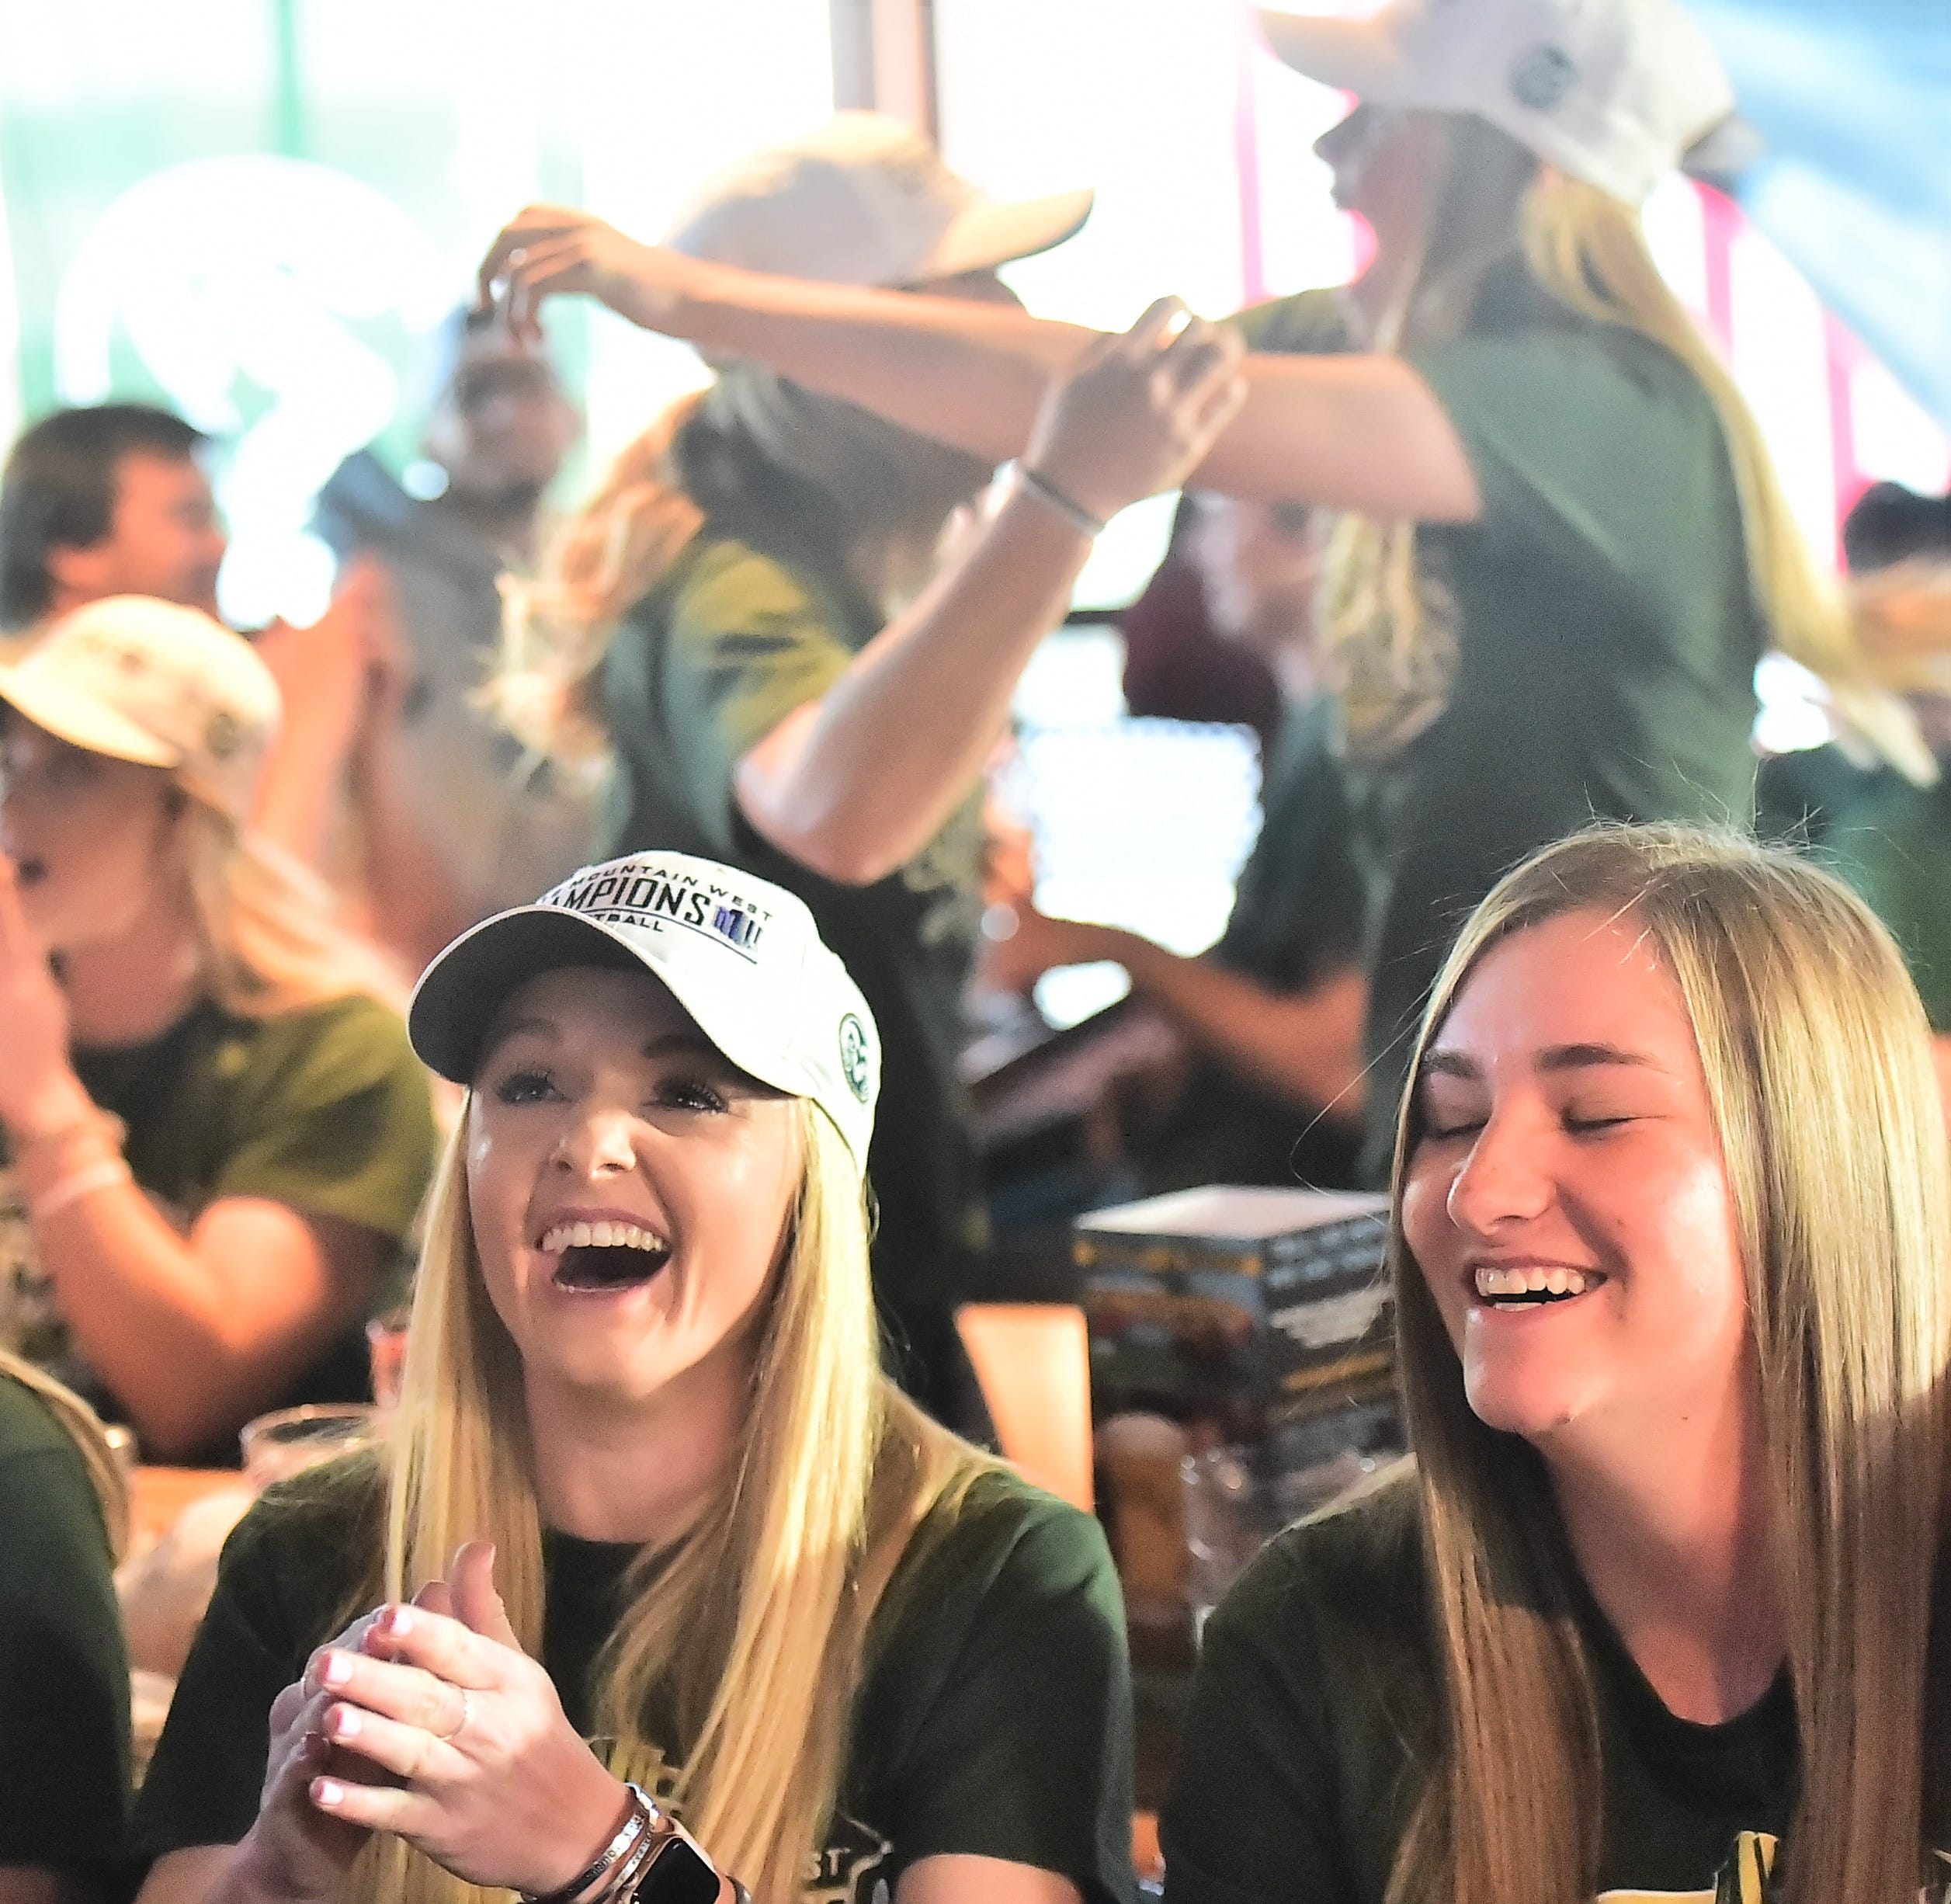 CSU softball will open NCAA tournament vs. Auburn on Friday in 4-team regional at Arizona